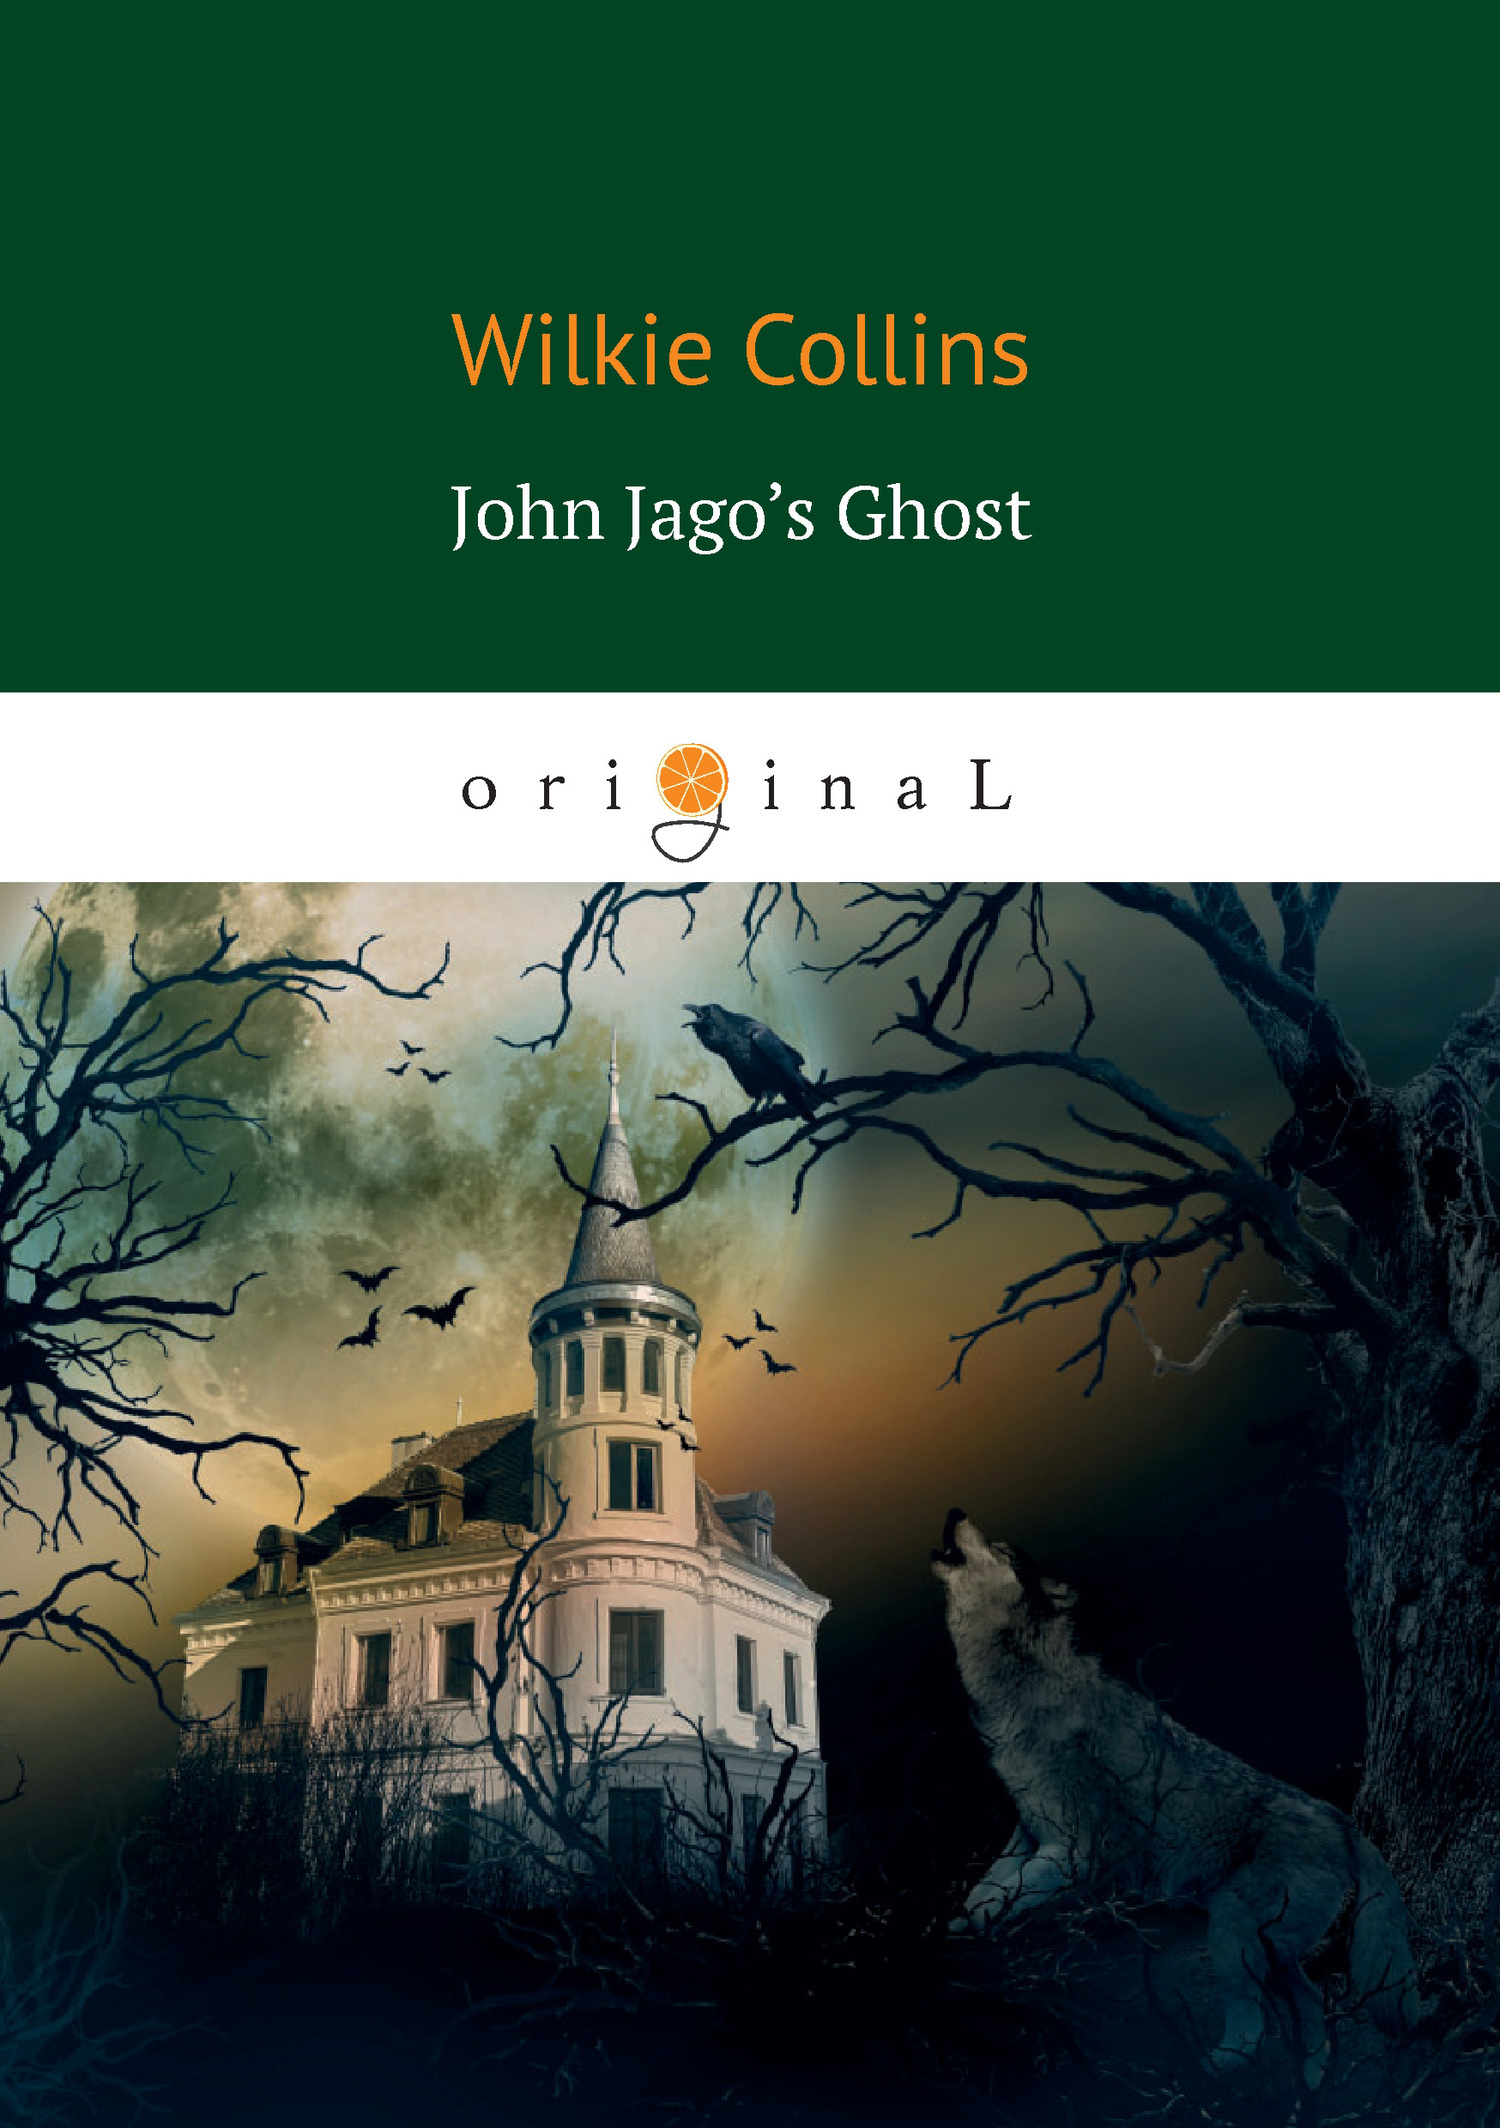 Уильям Уилки Коллинз John Jago's Ghost classified saskatoon